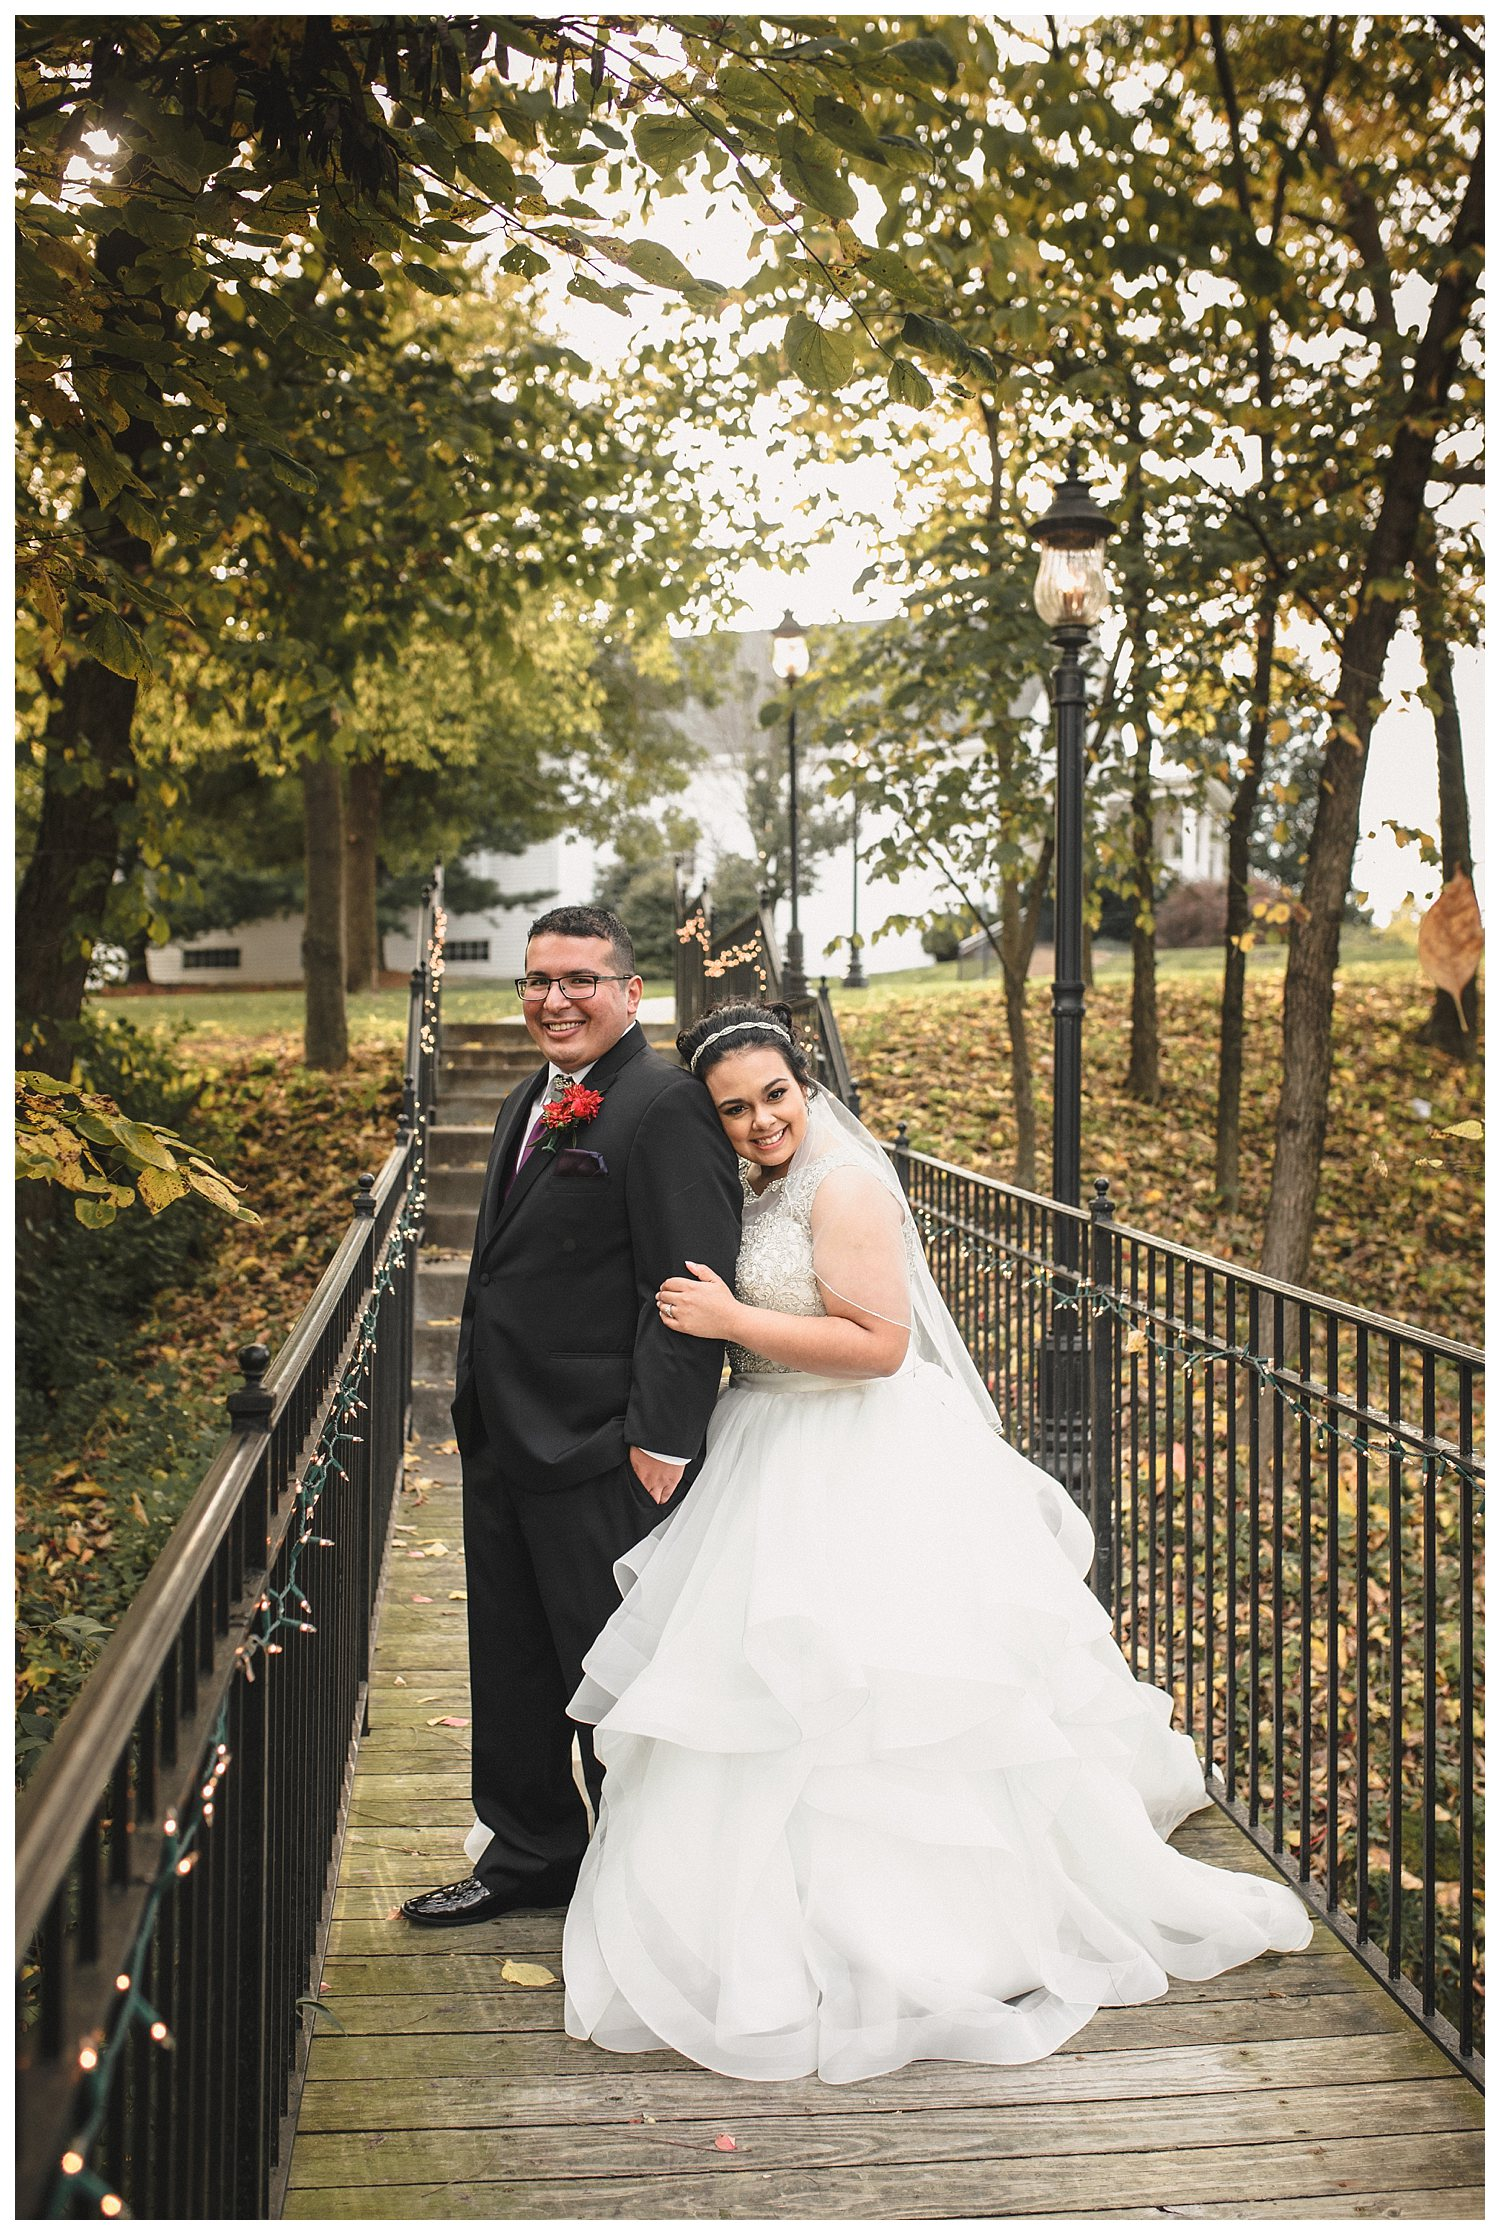 Kelsey_Diane_Photography_Hawthorne_House_Parkville_Kansas_City_Wedding_Veronica_Pat_0036.jpg